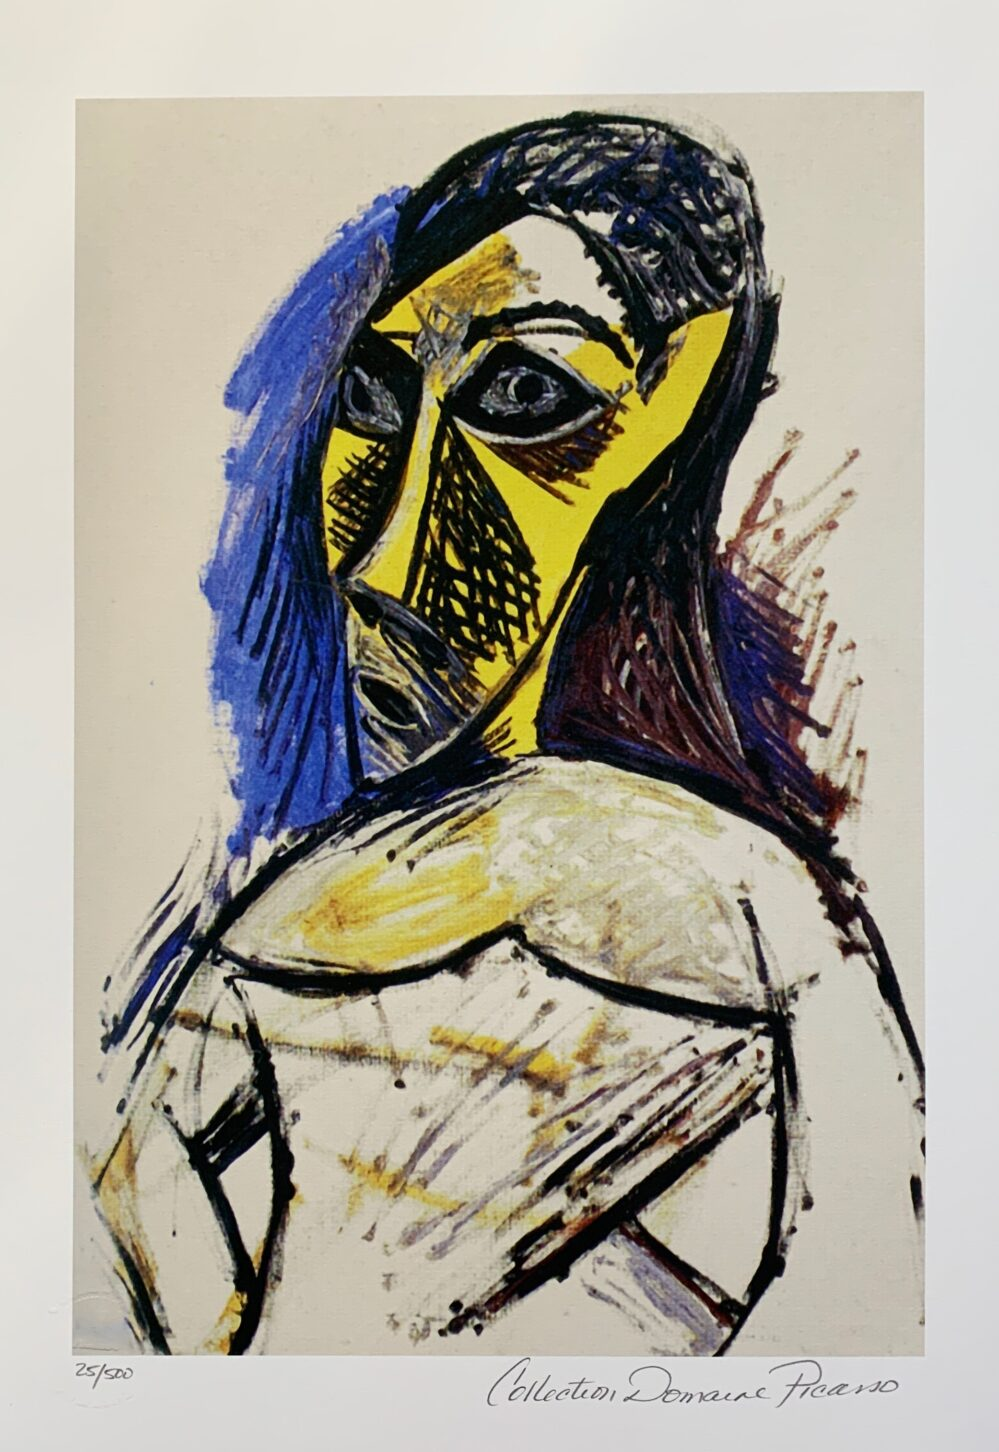 Pablo Picasso FEMALE NUDE STUDY Estate Signed Limited Edition Small Giclee